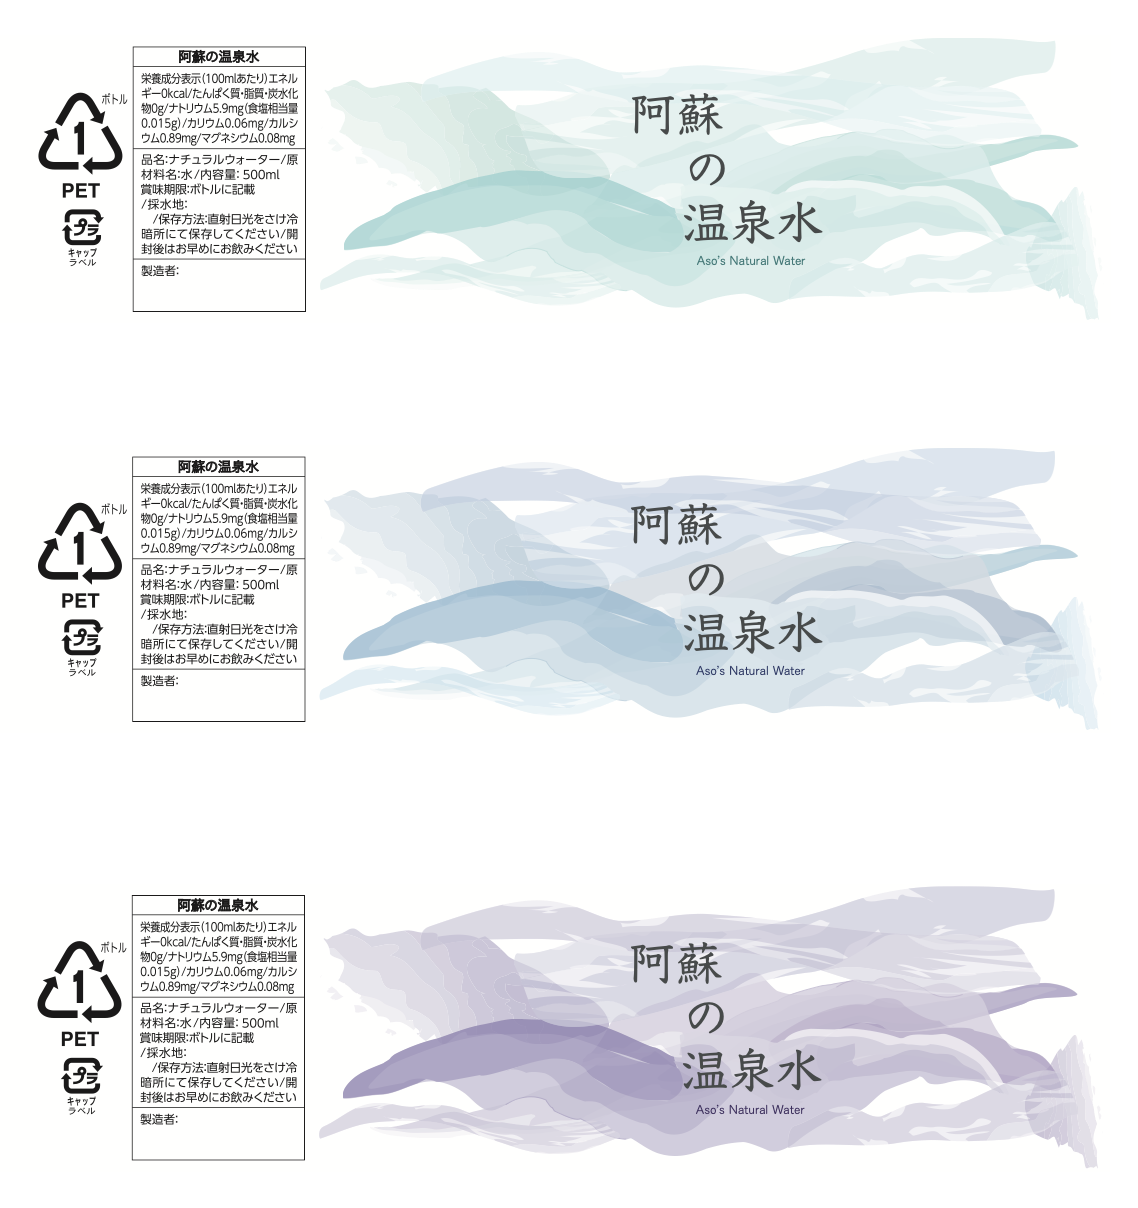 Aso's Natural Water Label (2020)